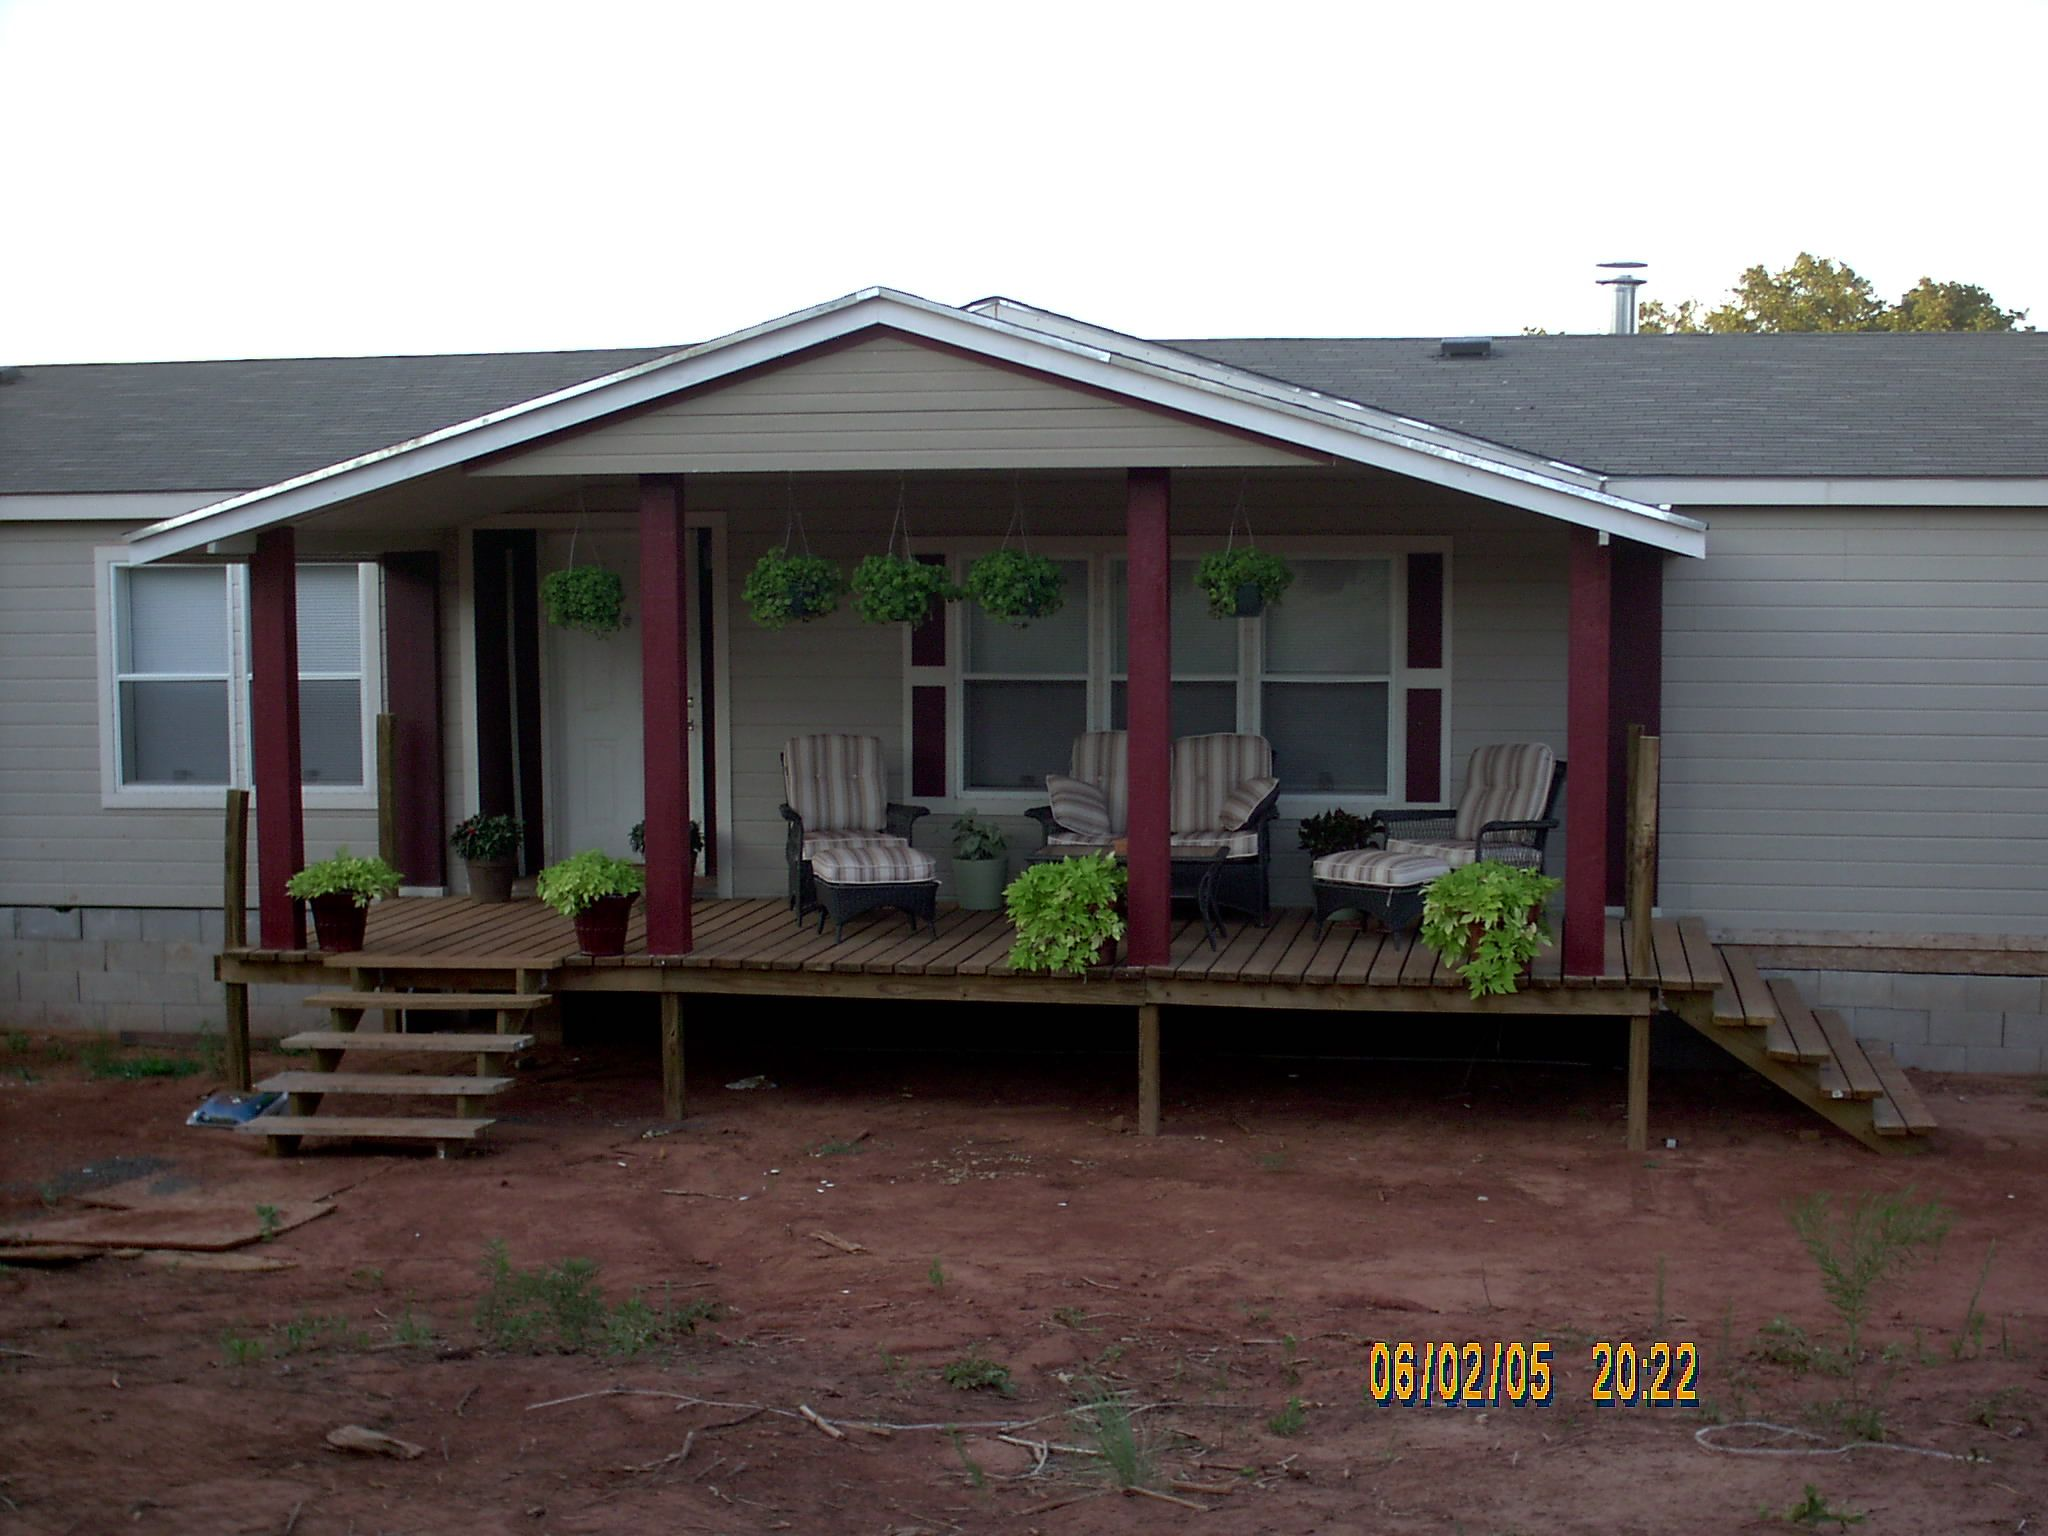 Room Additions For Mobile Homes   Buzzle Web Portal: Intelligent Part 89